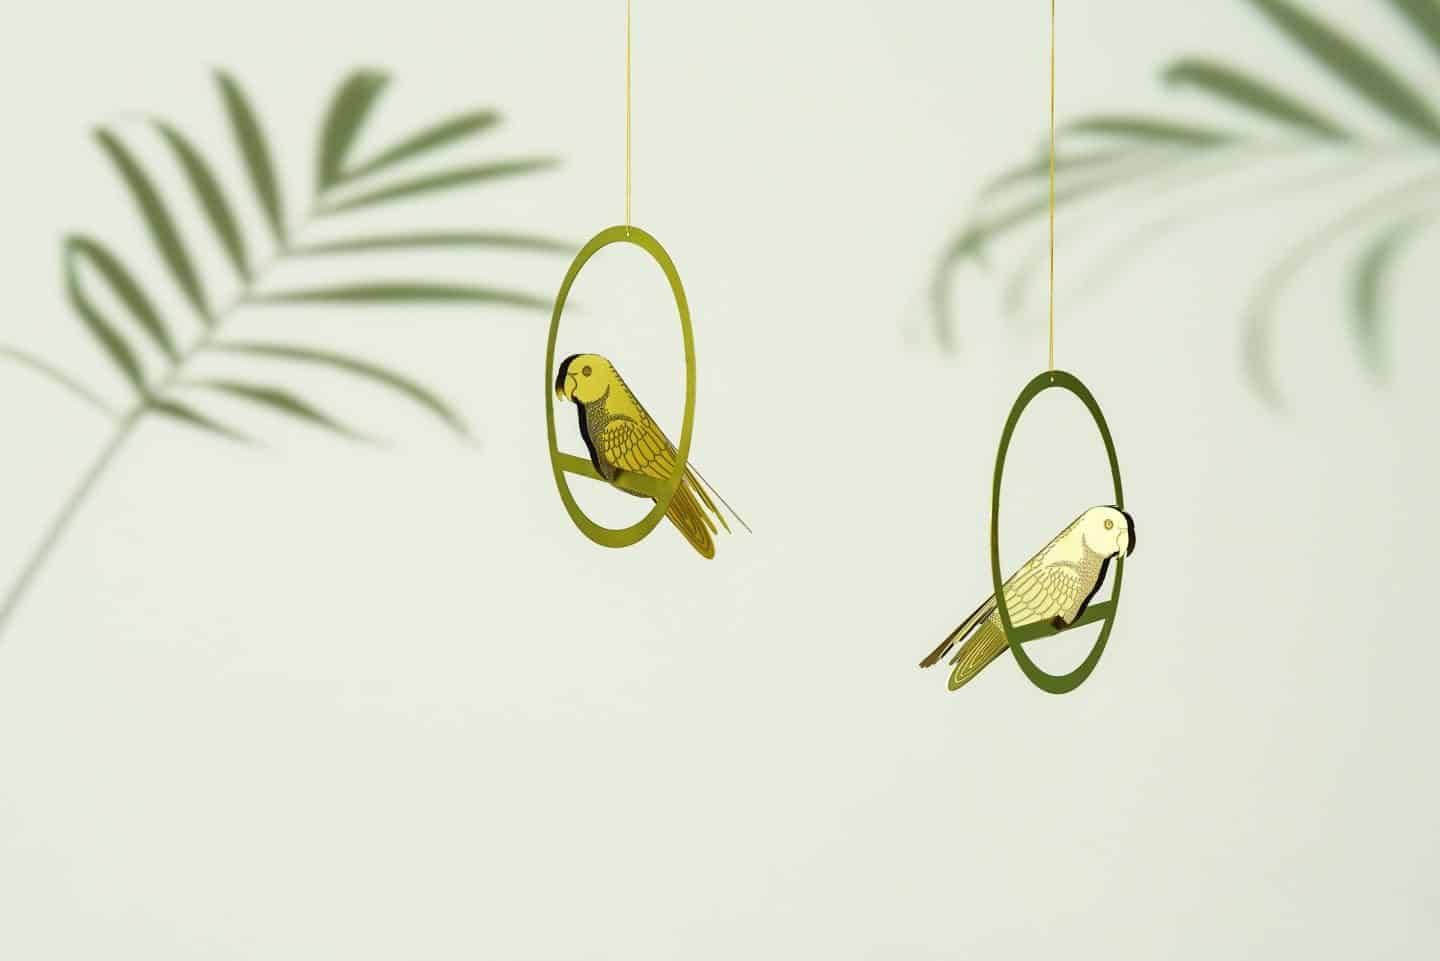 Gifts for plant lovers. These hanging brass bird decorations are from Another Studio